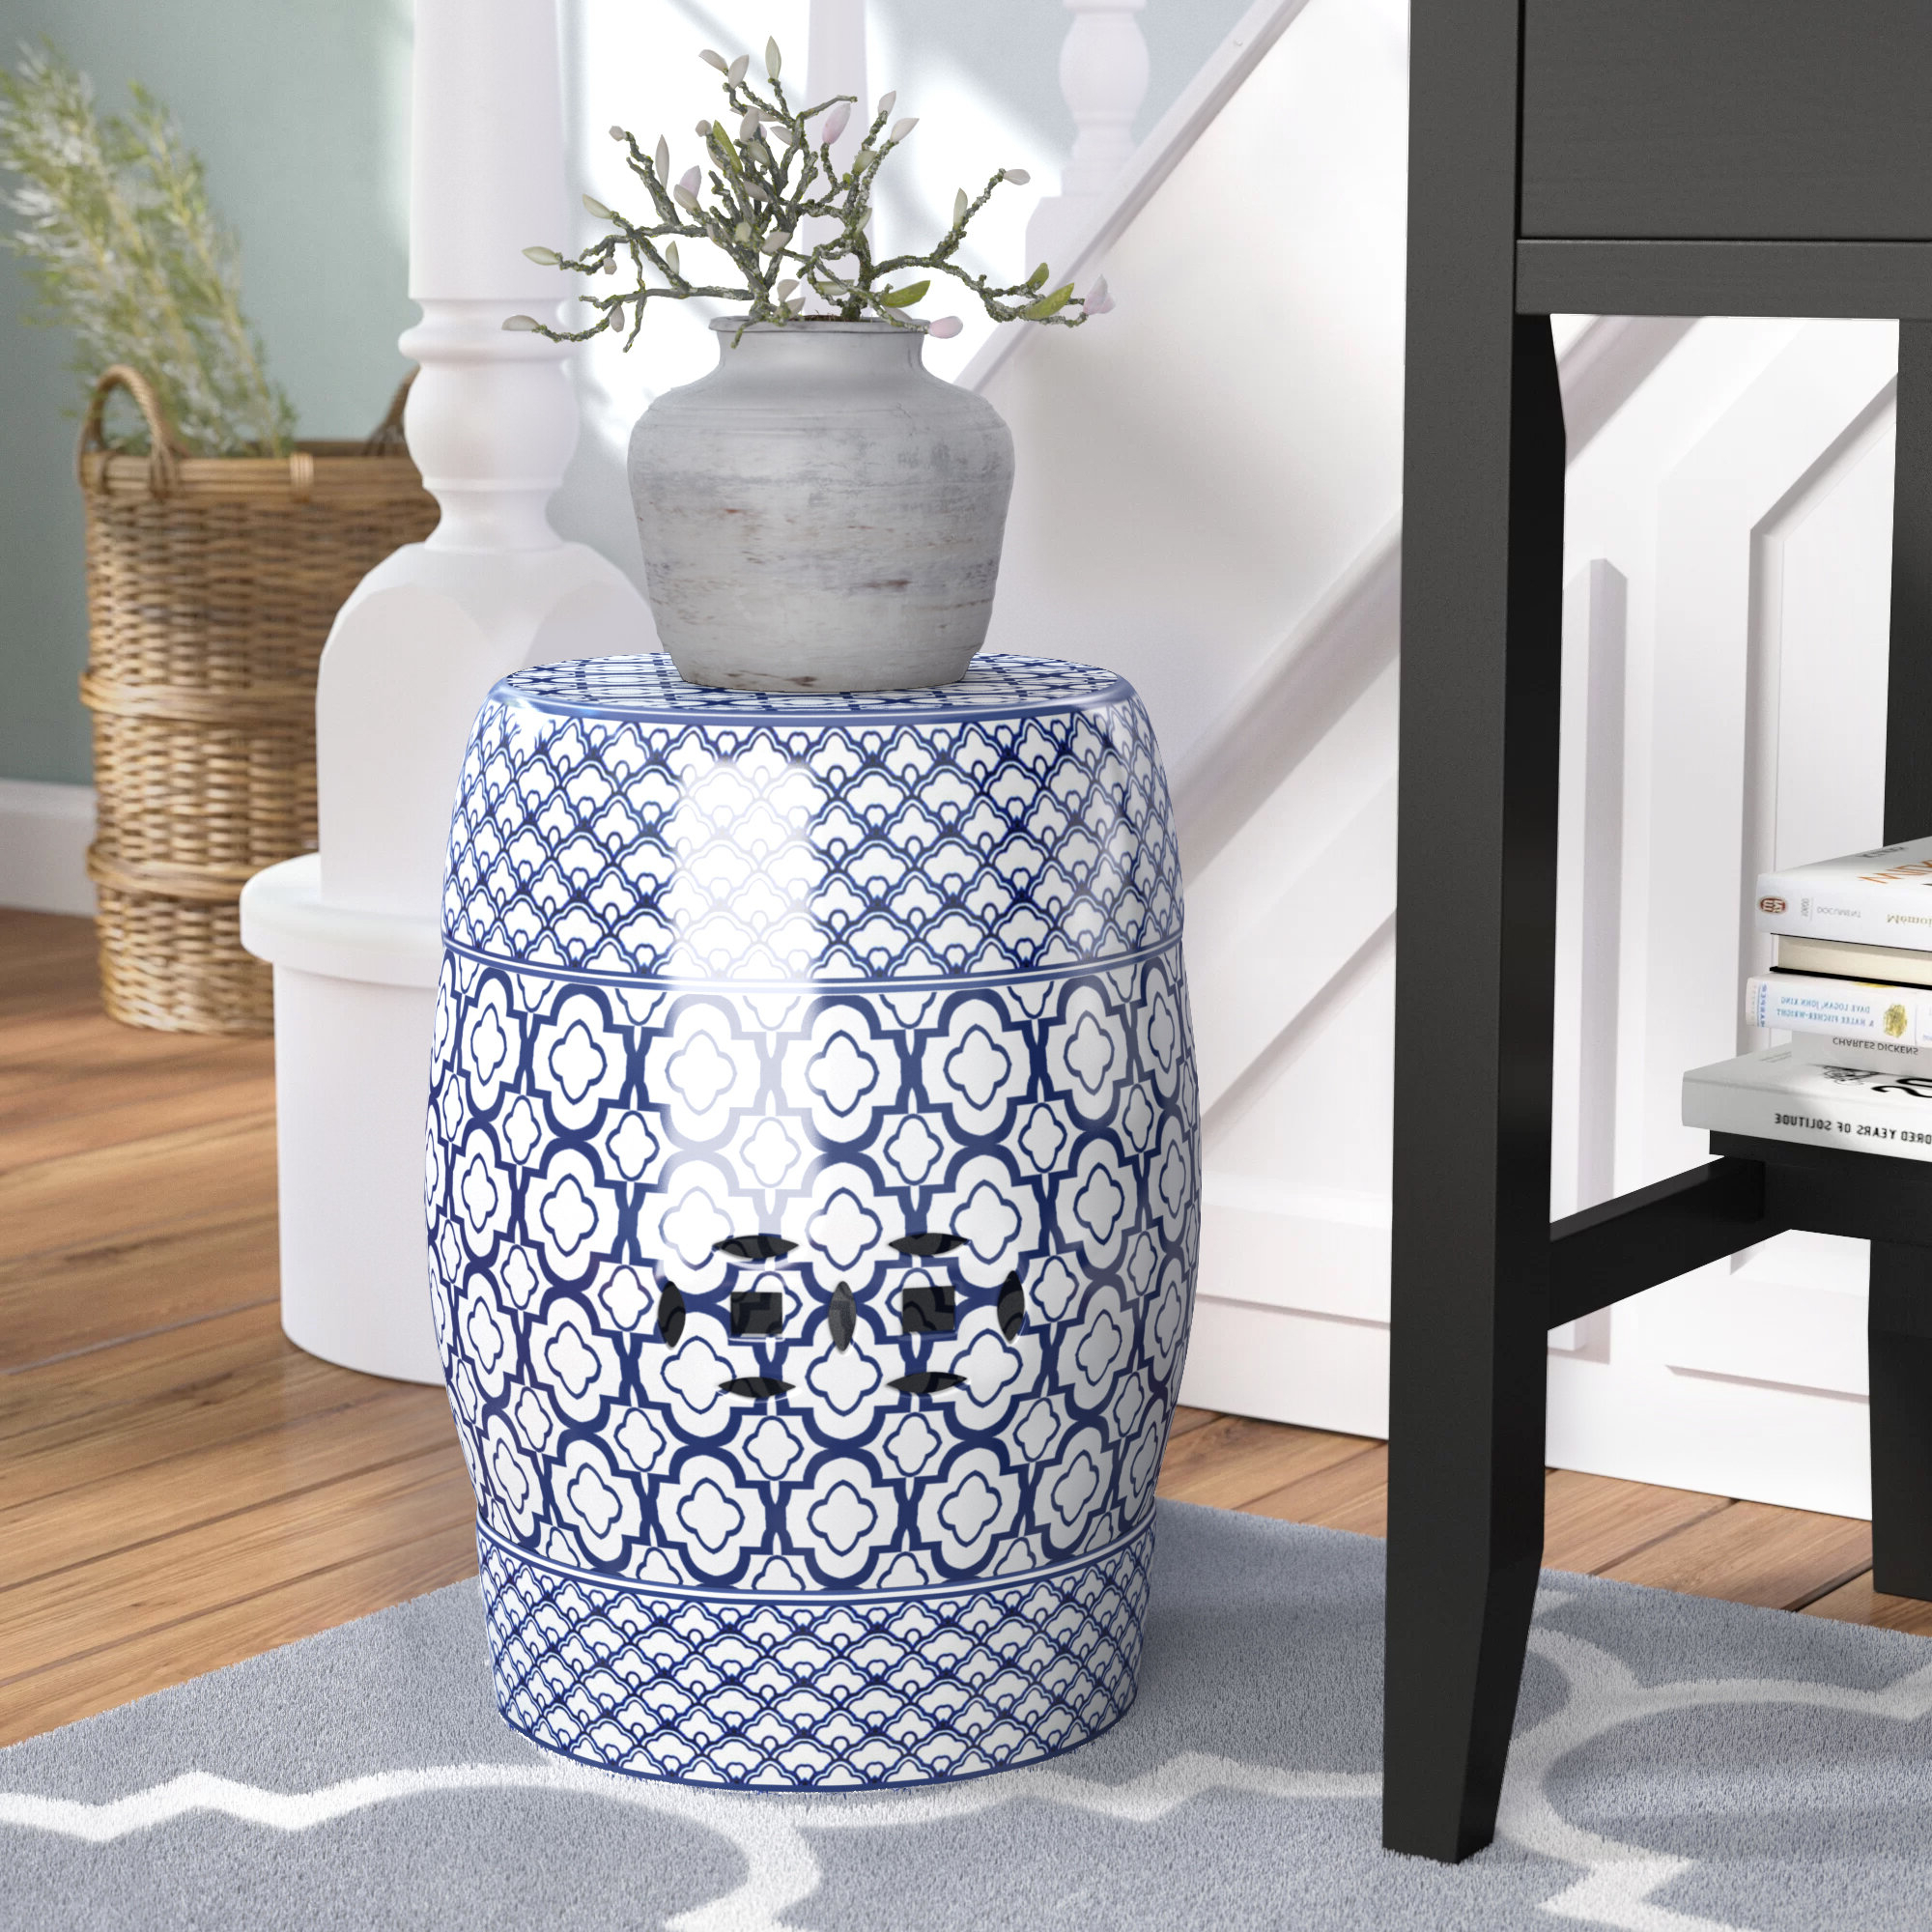 Wayfair Regarding Favorite Svendsen Ceramic Garden Stools (View 4 of 30)